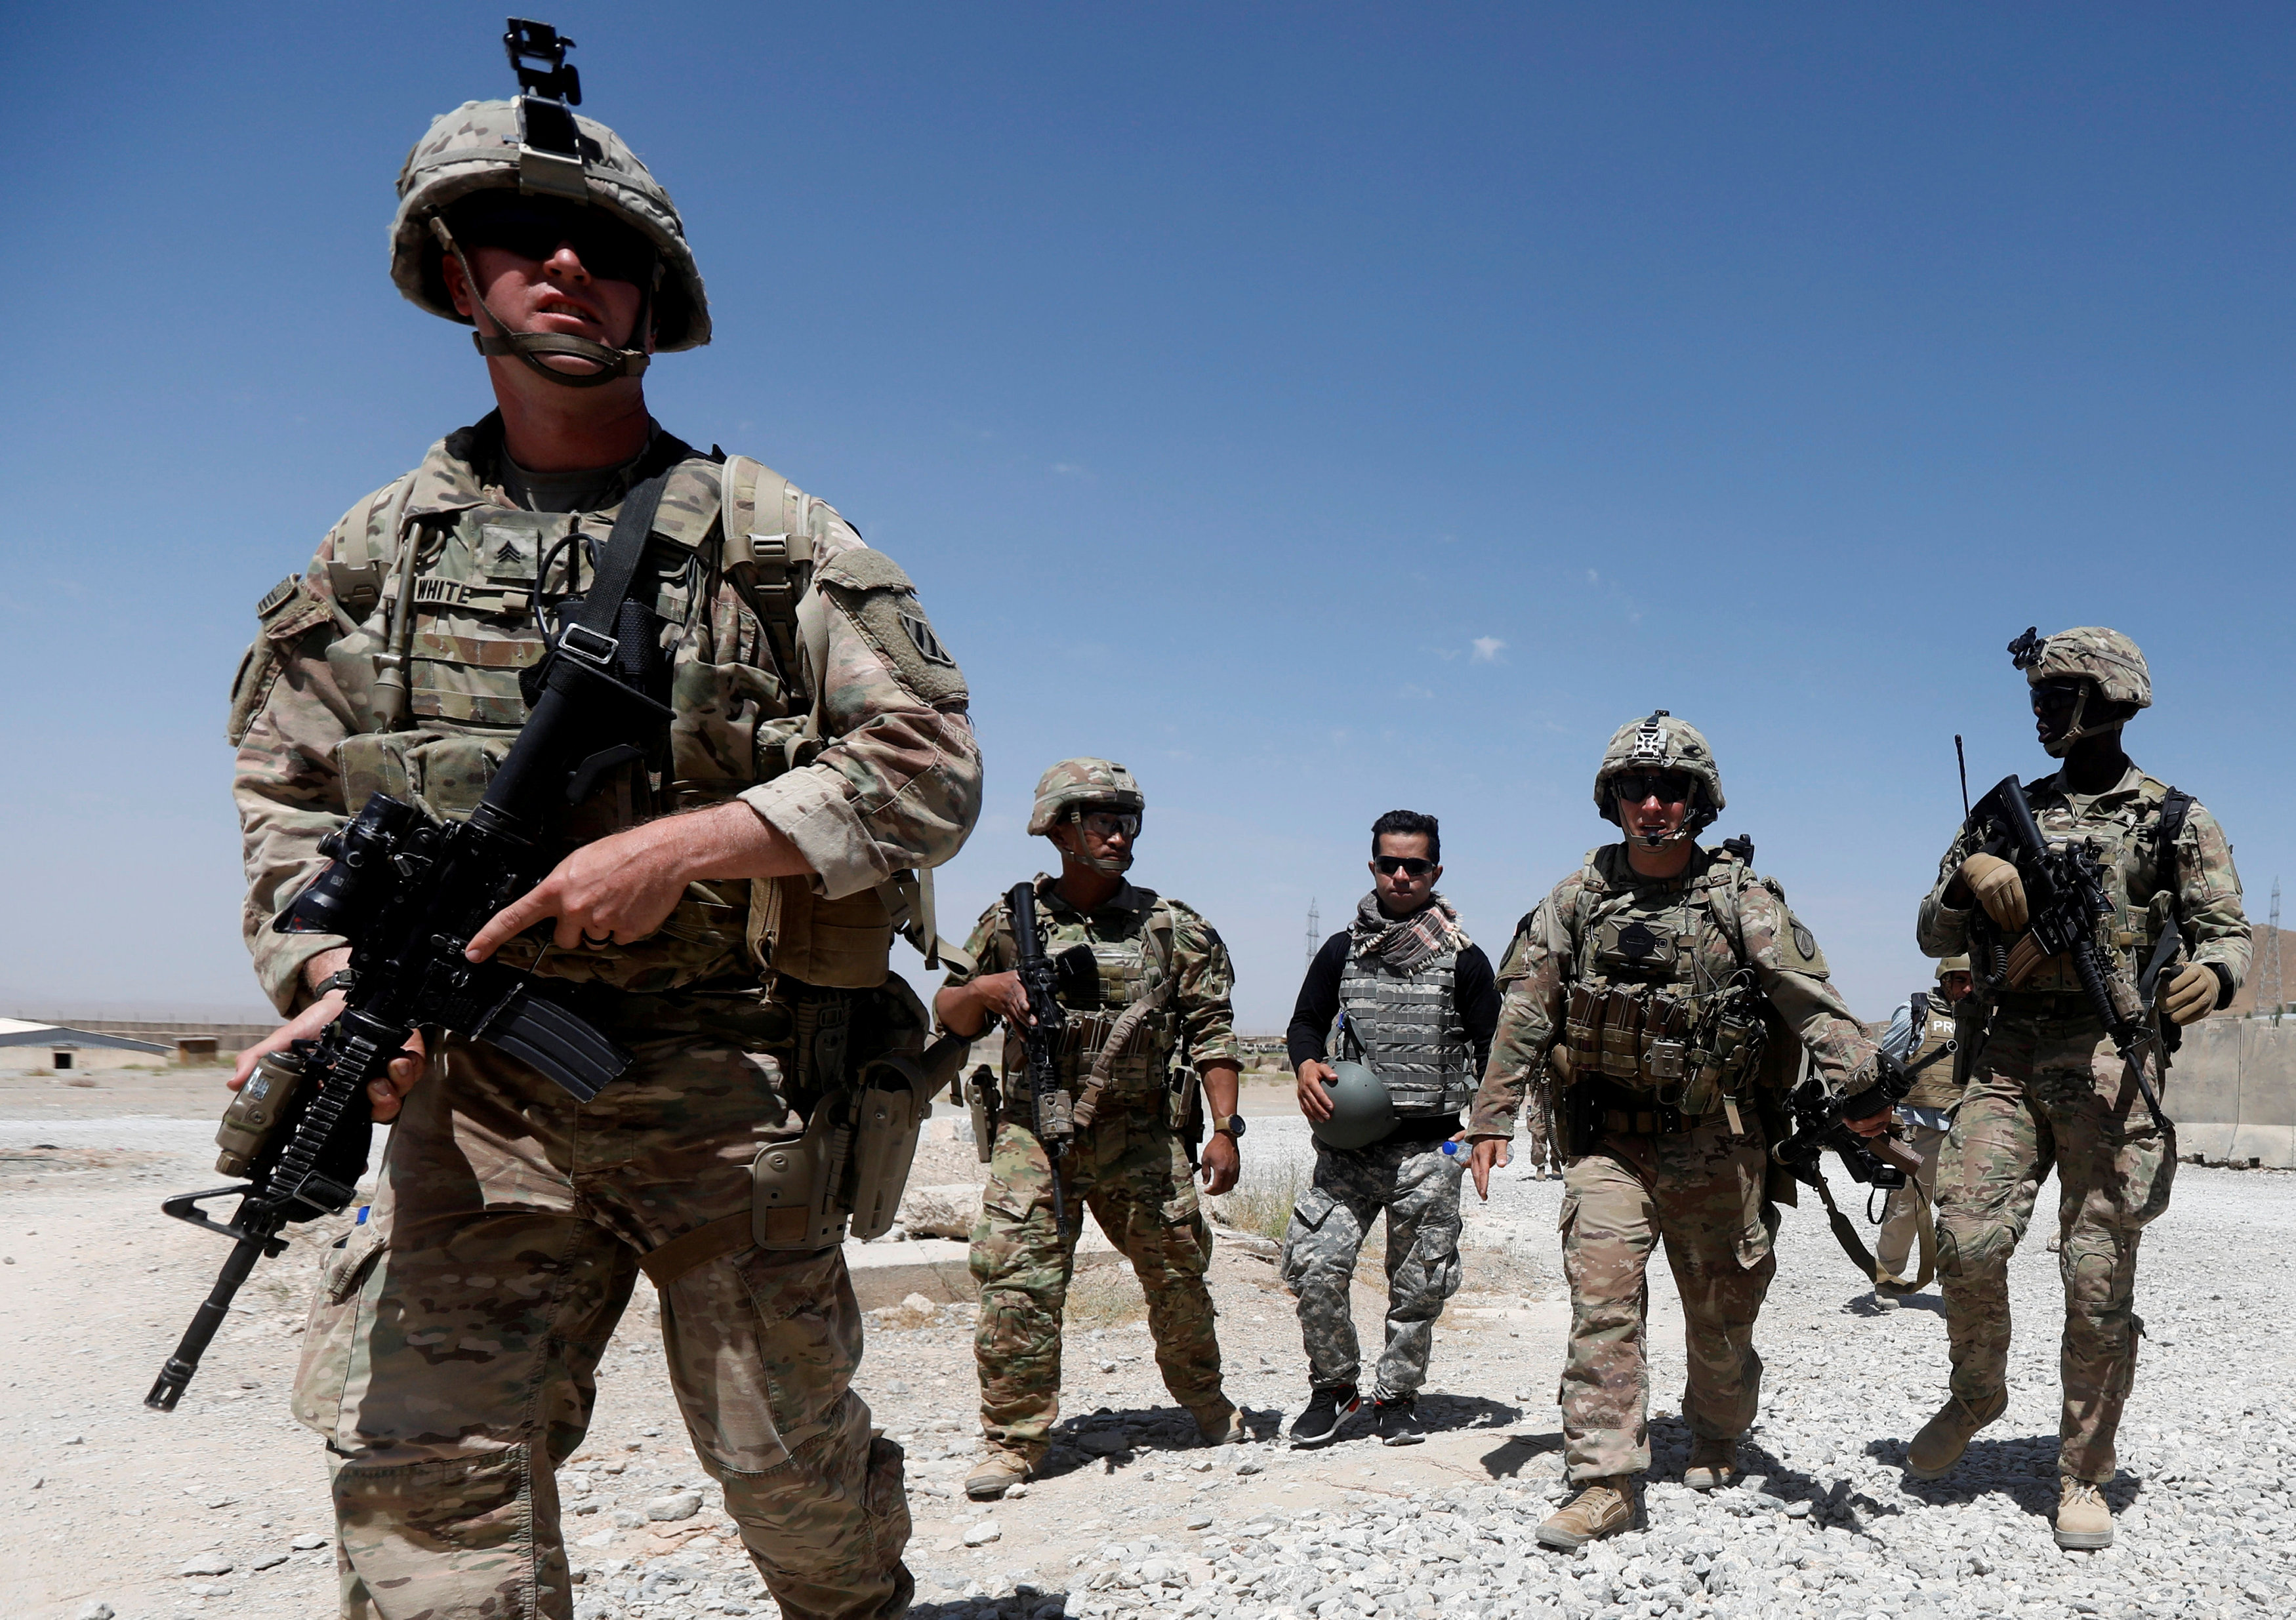 It is long past time for a national reckoning with the catastrophic costs of endless war